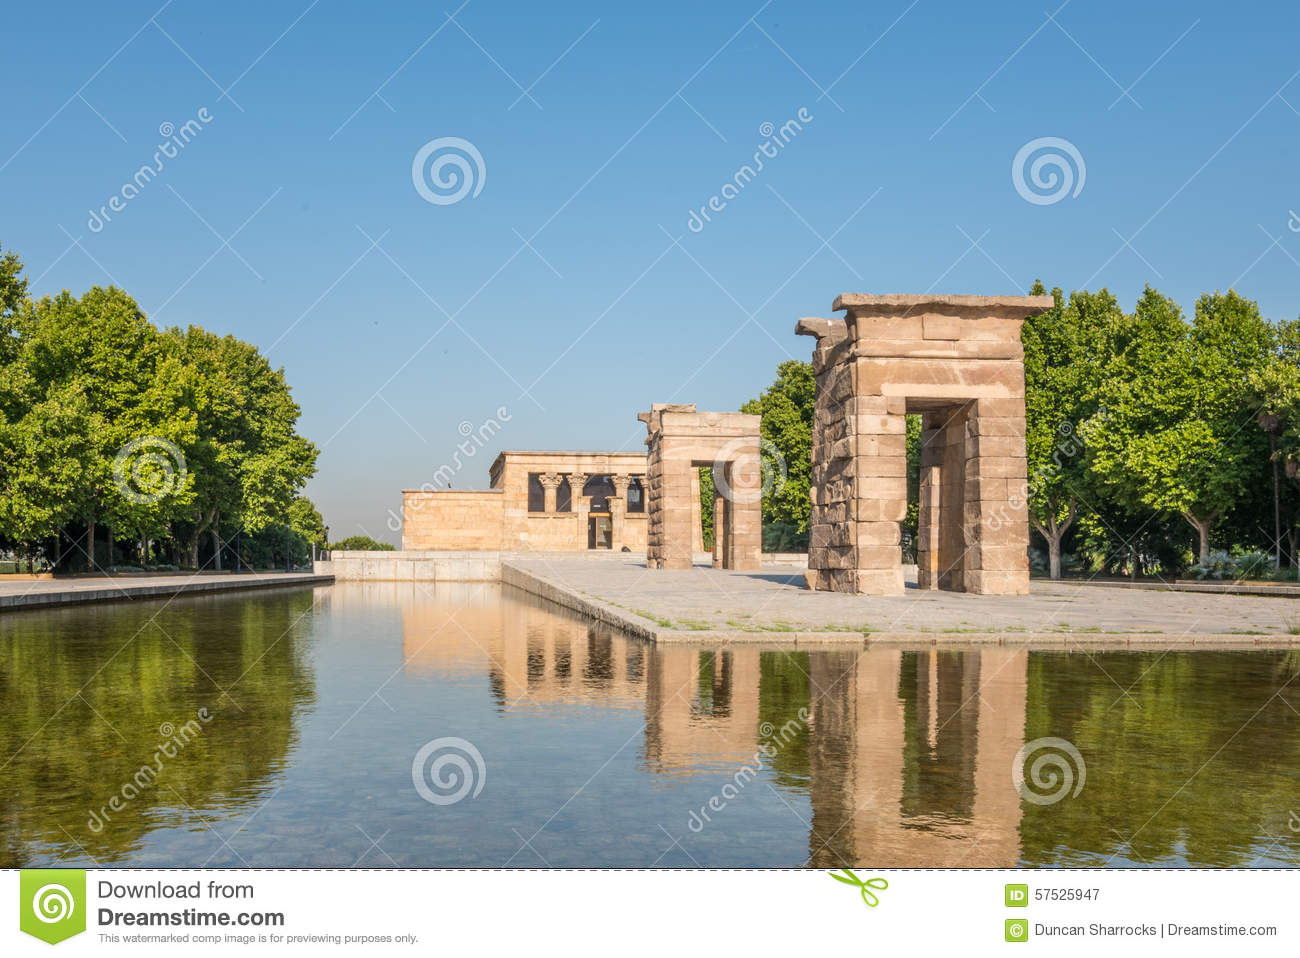 Temple of debod parque del oeste madrid spain stock for Parques de madrid espana